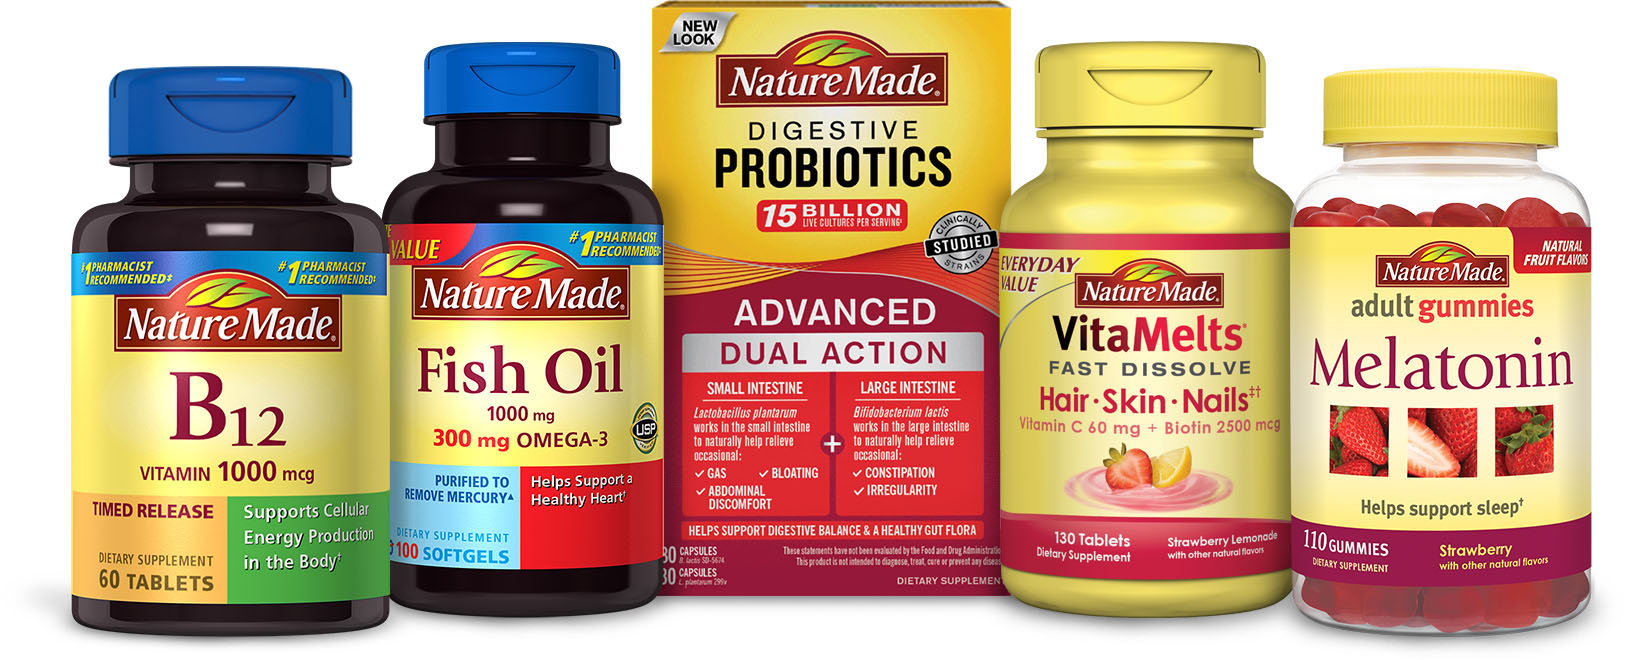 Nature Made Probiotic Dual Support Reviews